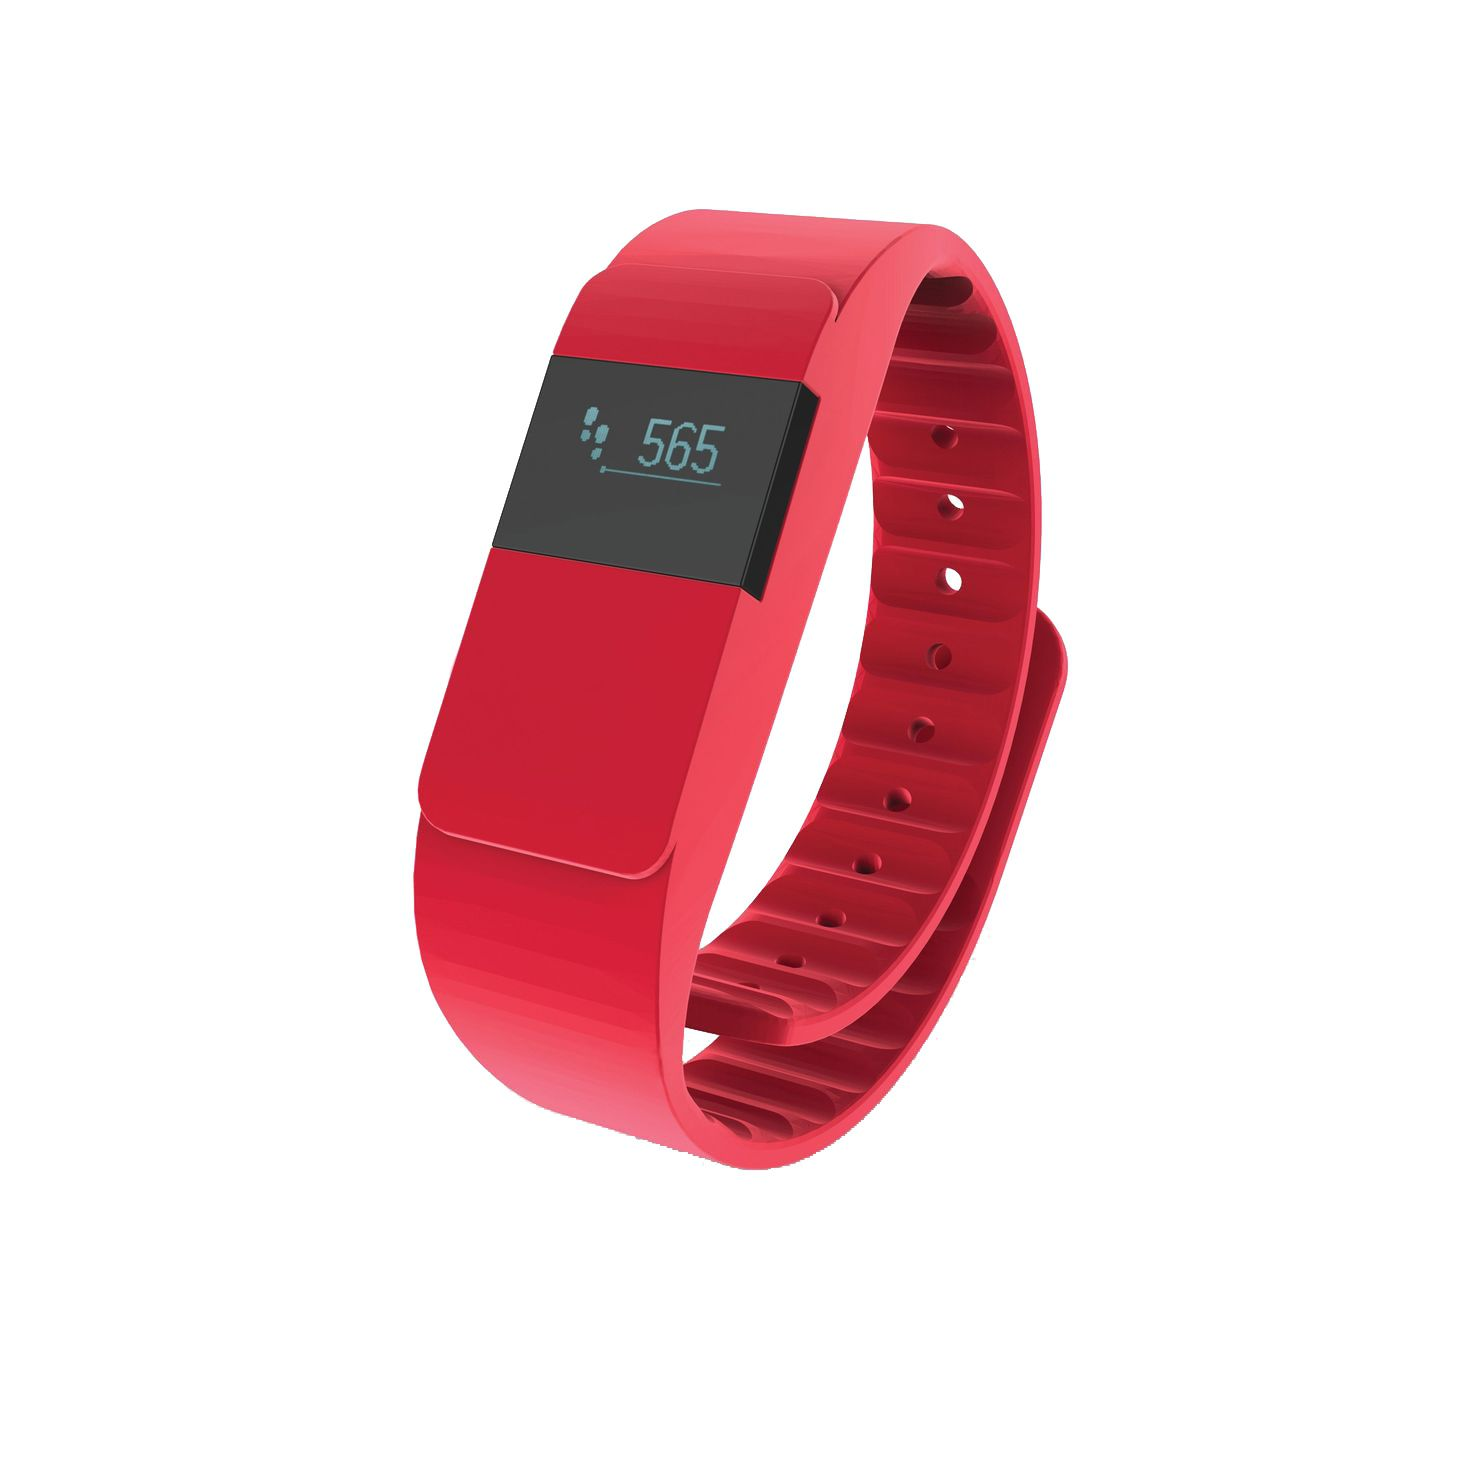 Rode Activity tracker bedrukken